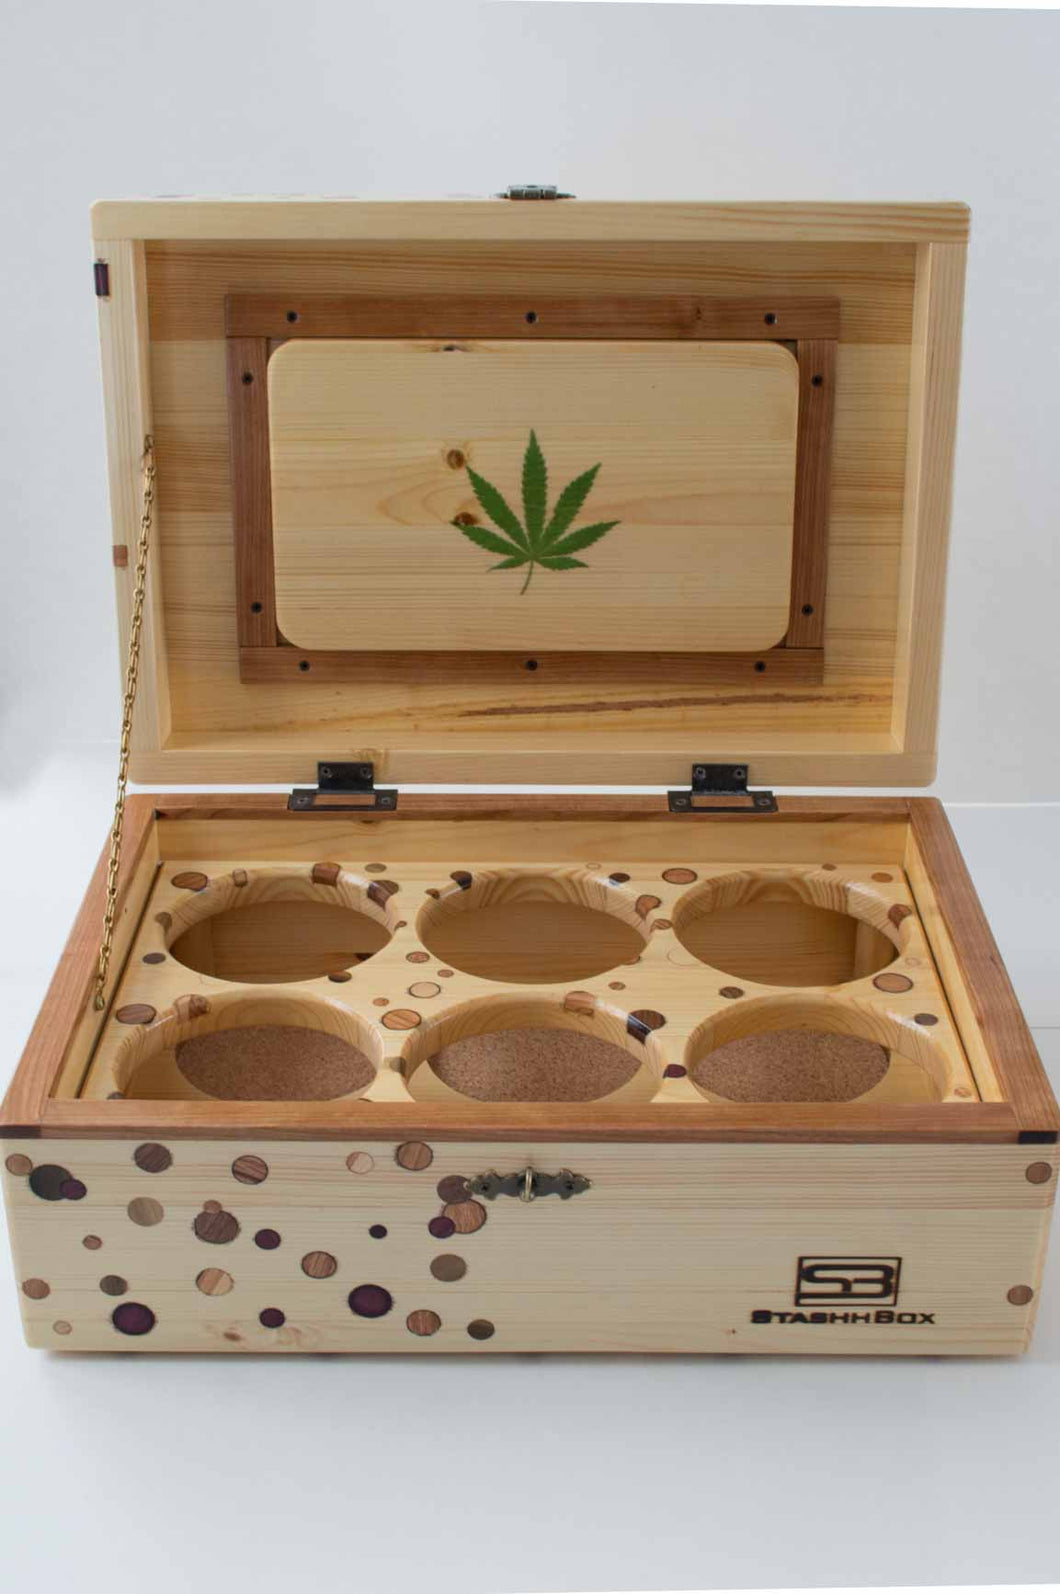 Front view of an open Chronic Toker StashhBox,